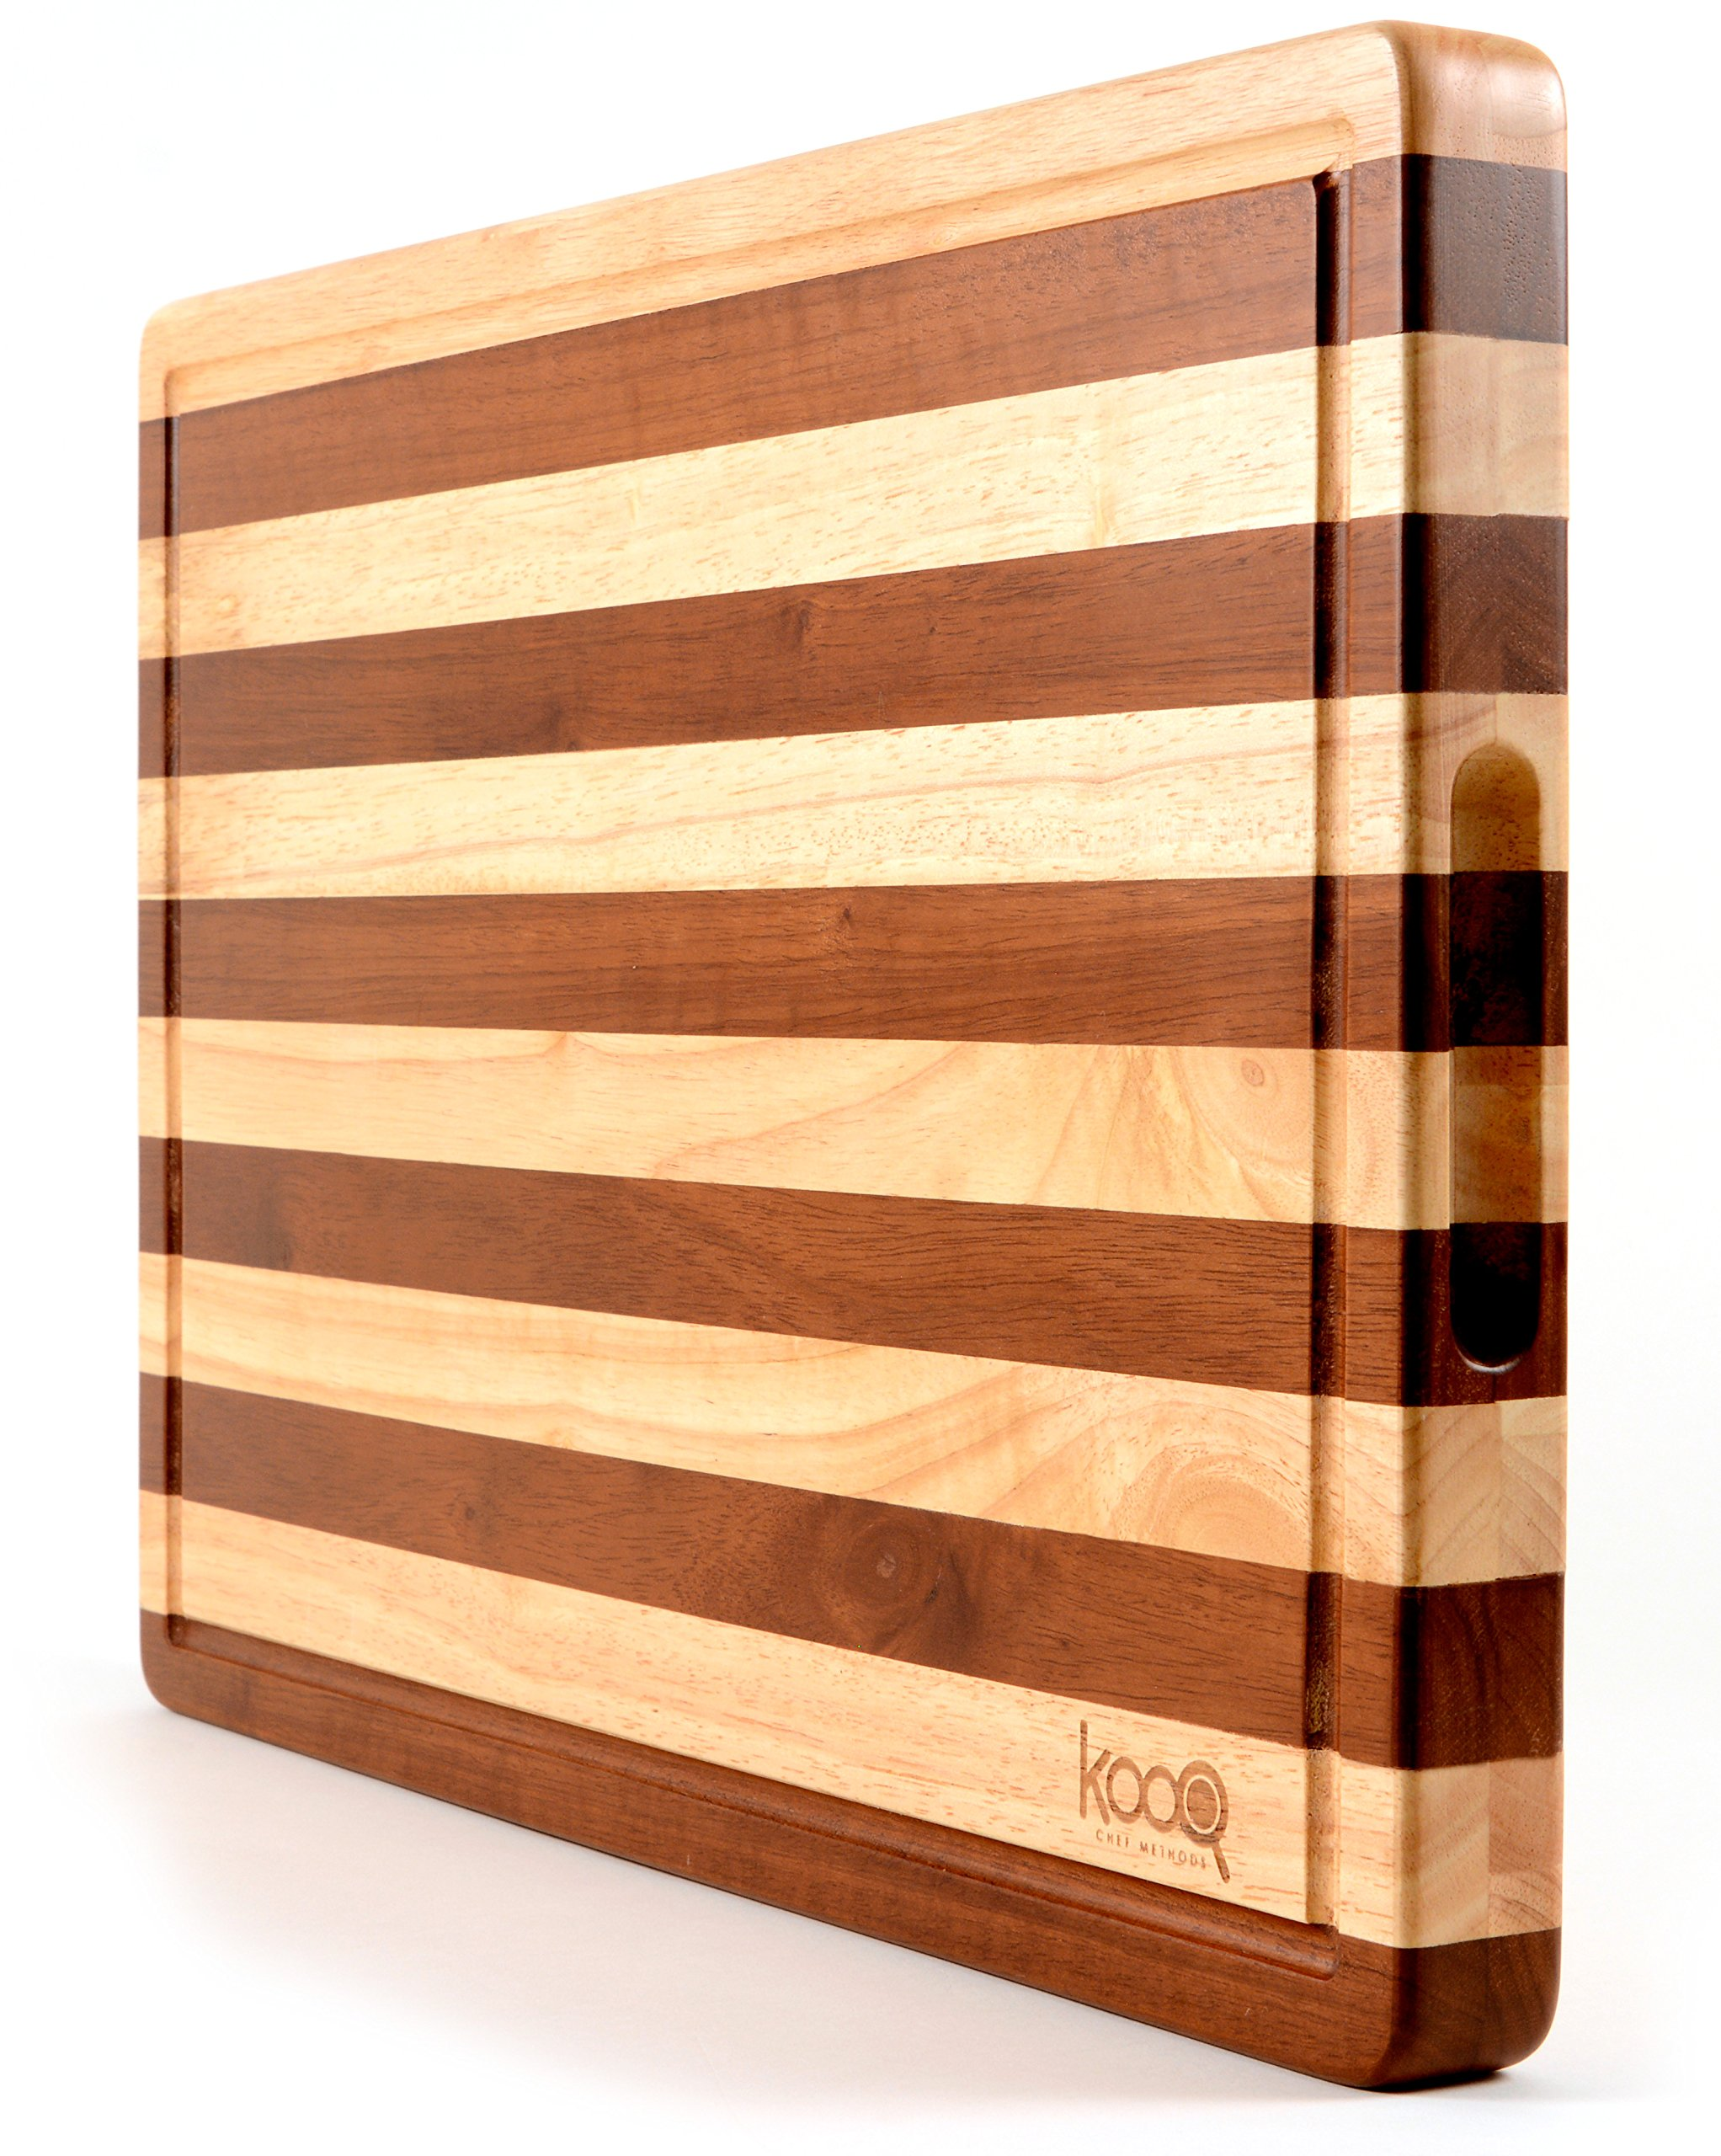 "PREMIUM - The Most Beautiful Two-Tones Chopping Block and Serving Board! Unique Cutting Board (Extra Large - 19.5"" by 14"" and 1.5"" thick) - Luxury Butcher's Block by KOOQ"